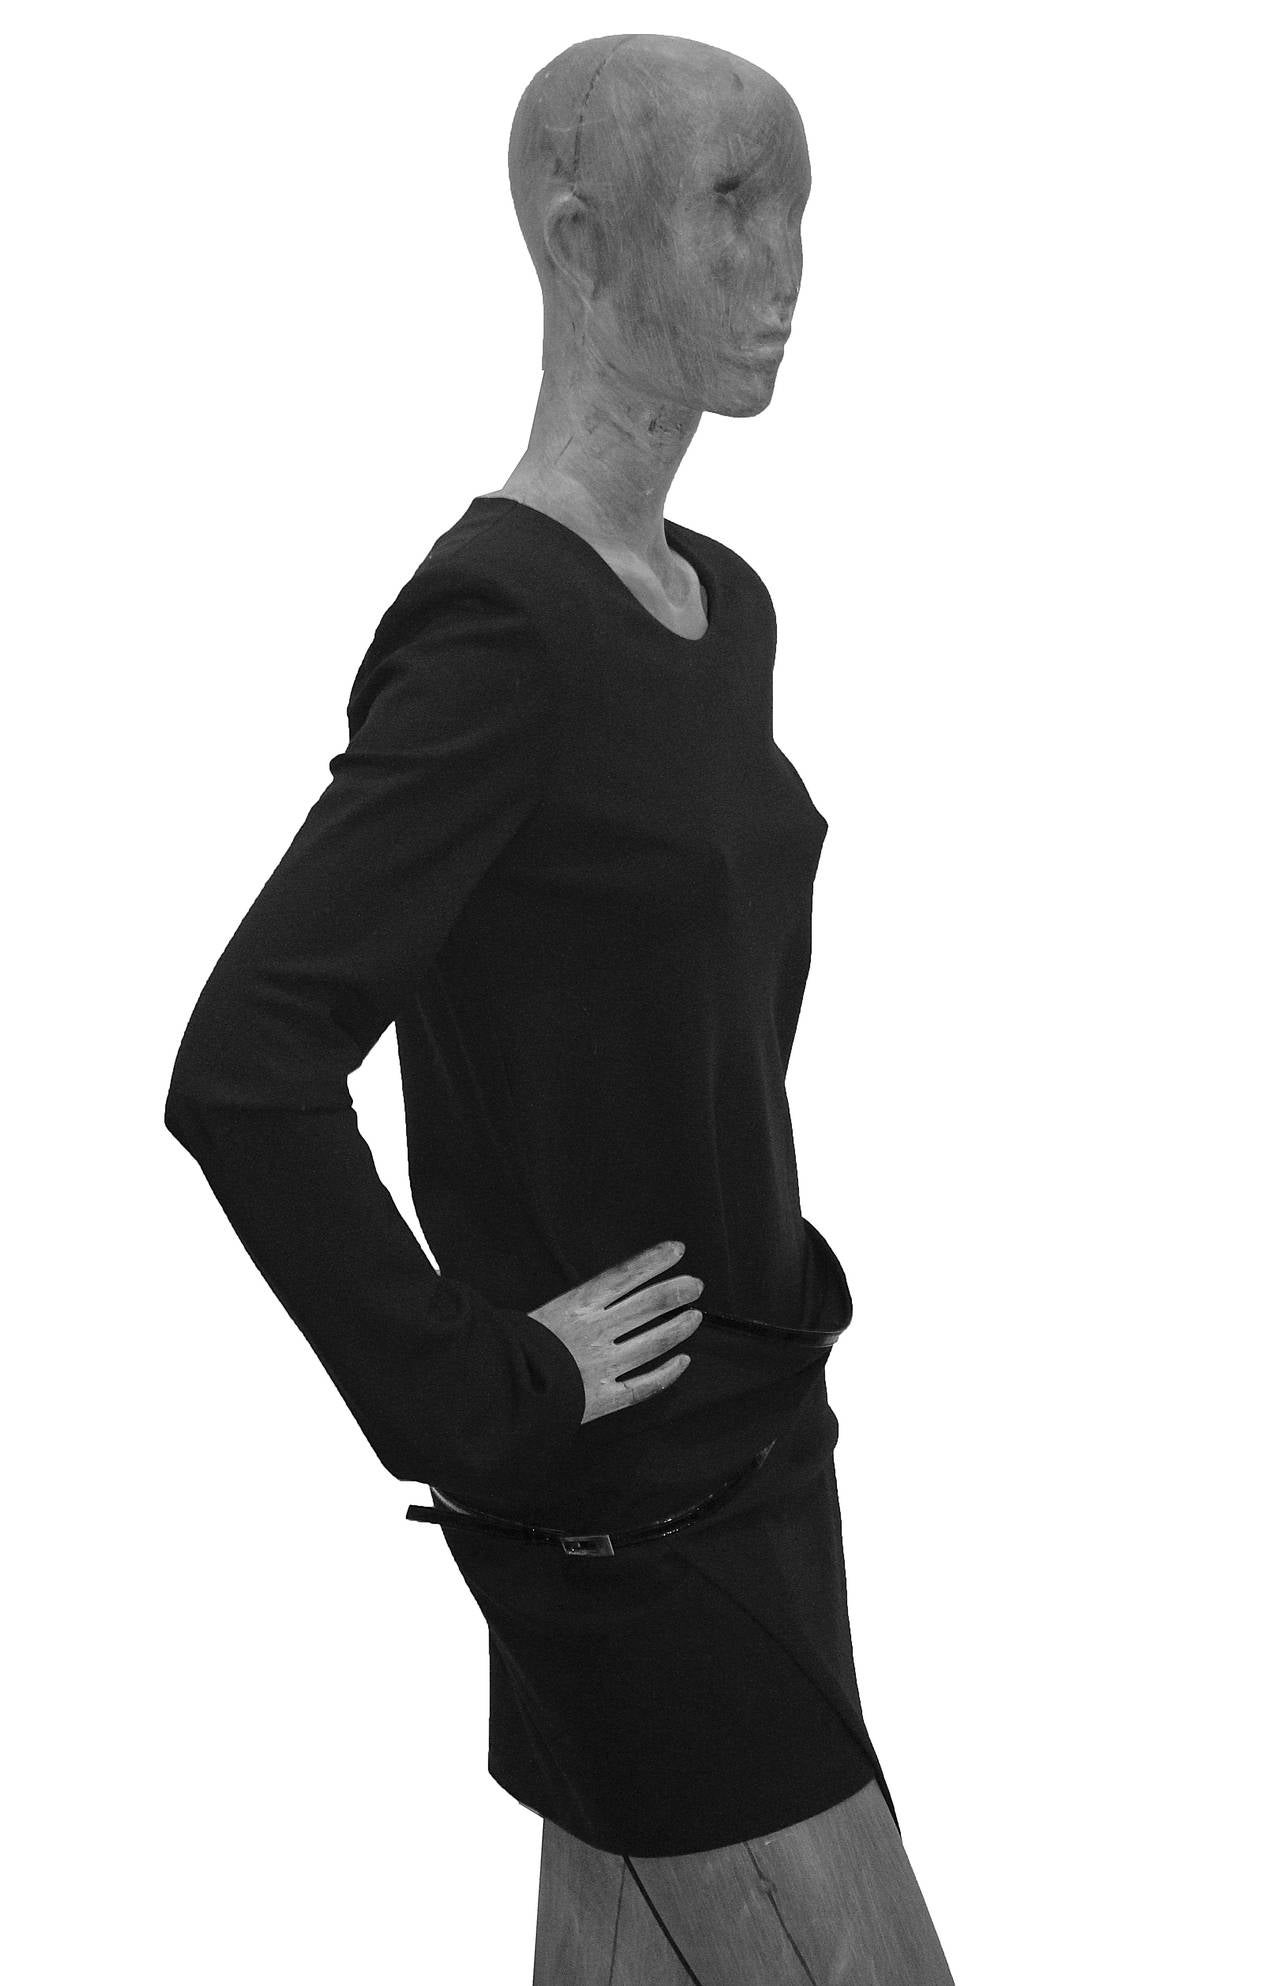 Iconic 90s Tom Ford for Gucci Little Black Dress c. 1997 ...